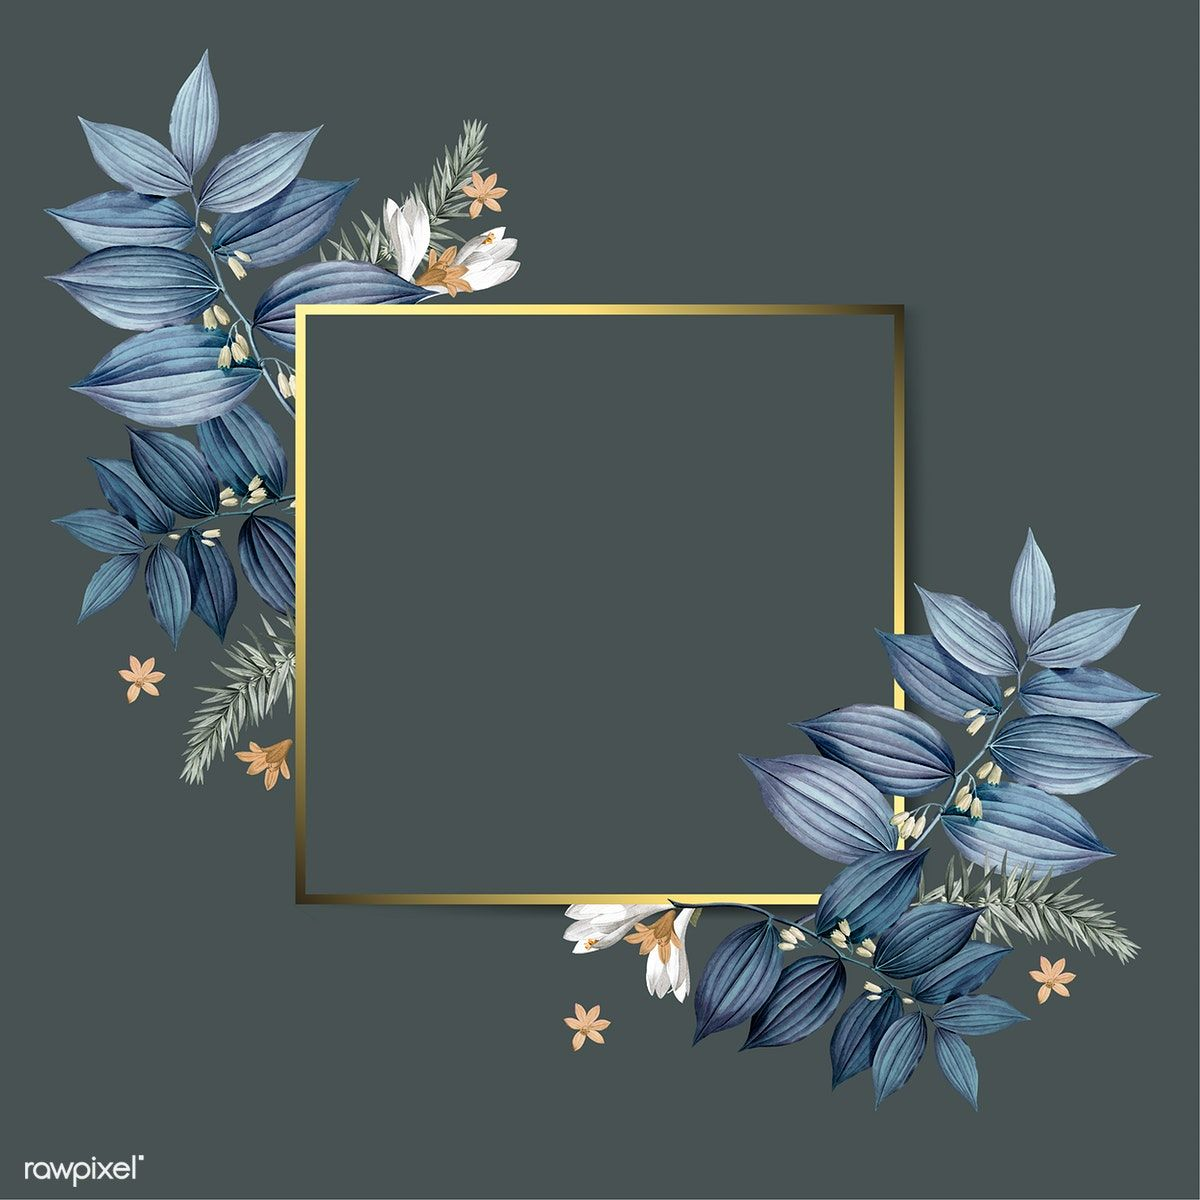 Download Premium Vector Of Empty Floral Frame Design Vector 520621 Frame Design Floral Background Colorful Backgrounds